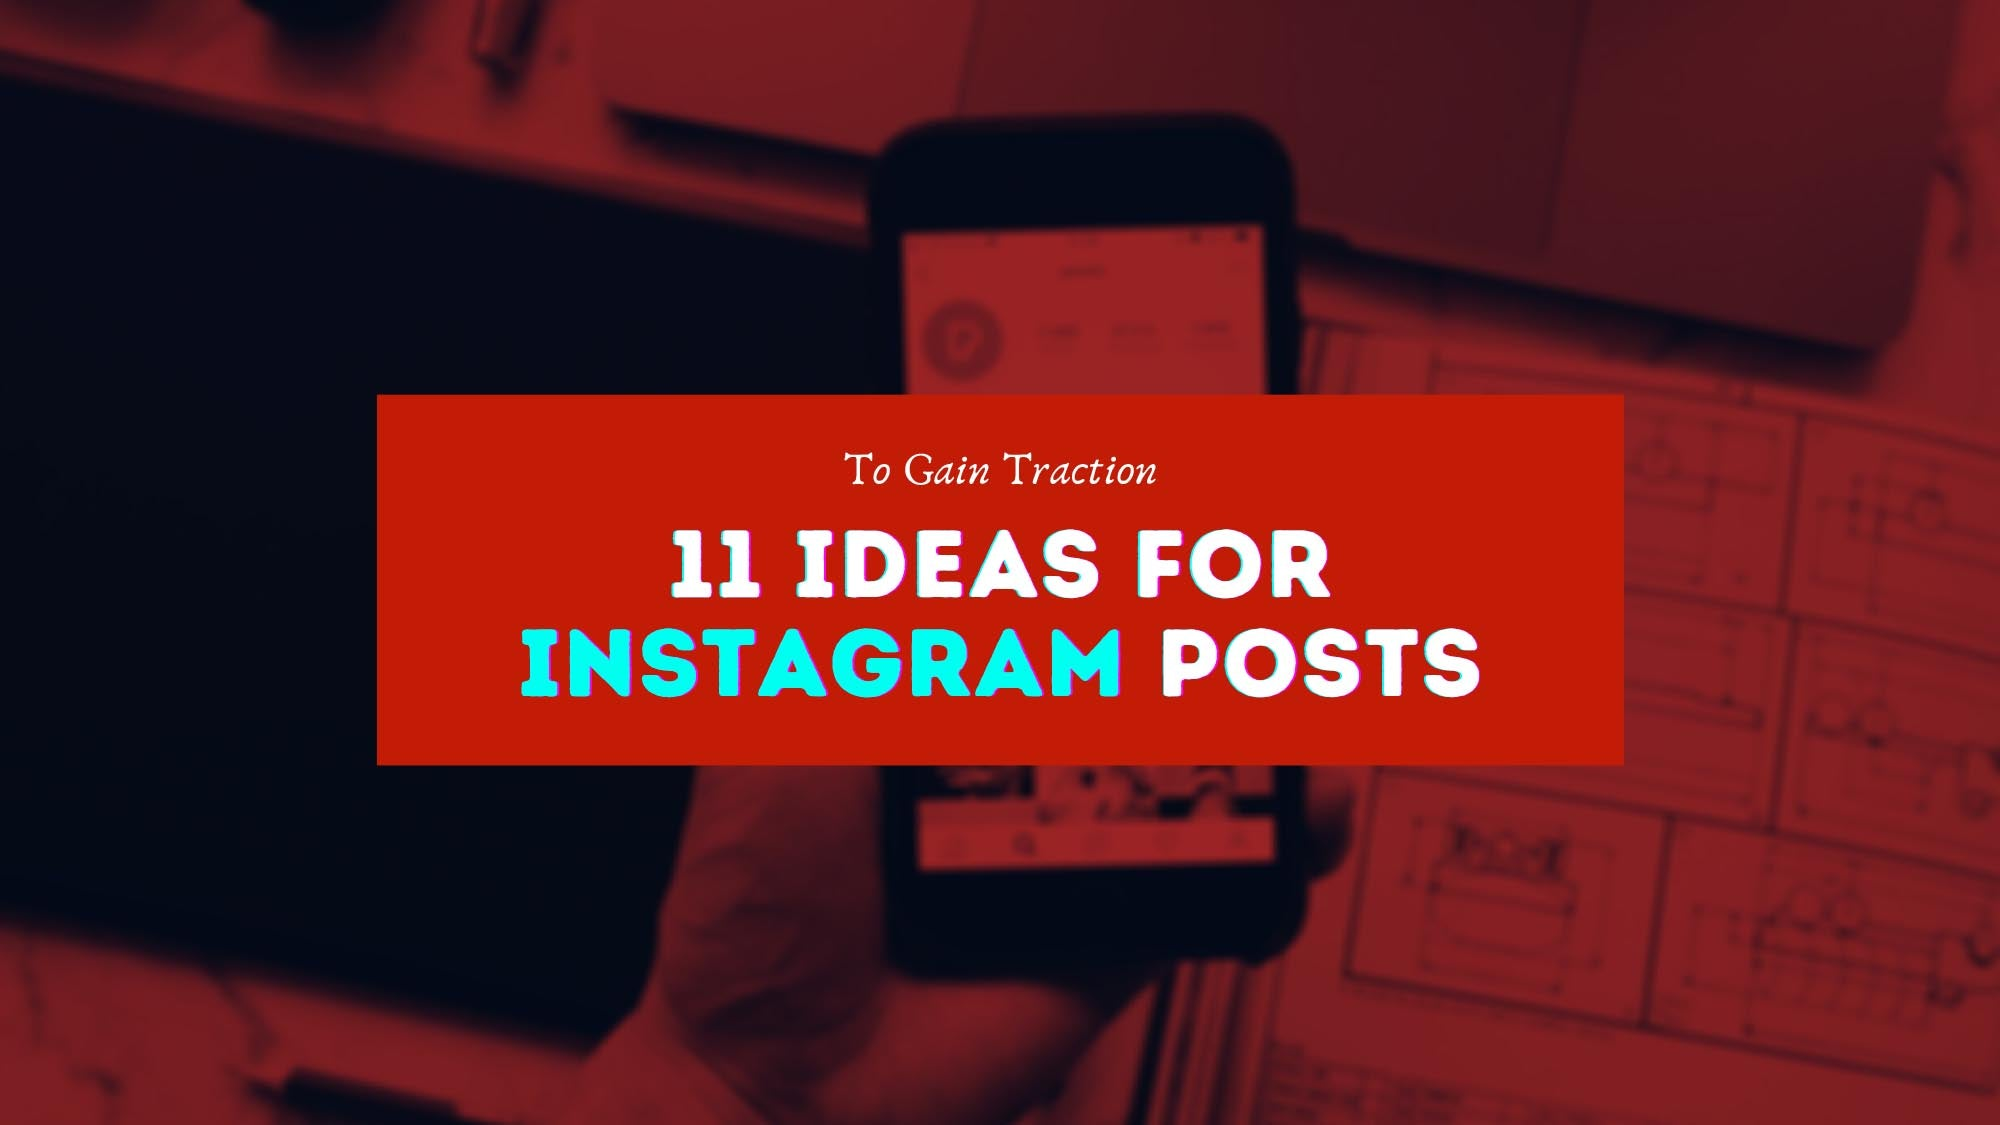 11 Ideas For Instagram Posts To Gain Traction